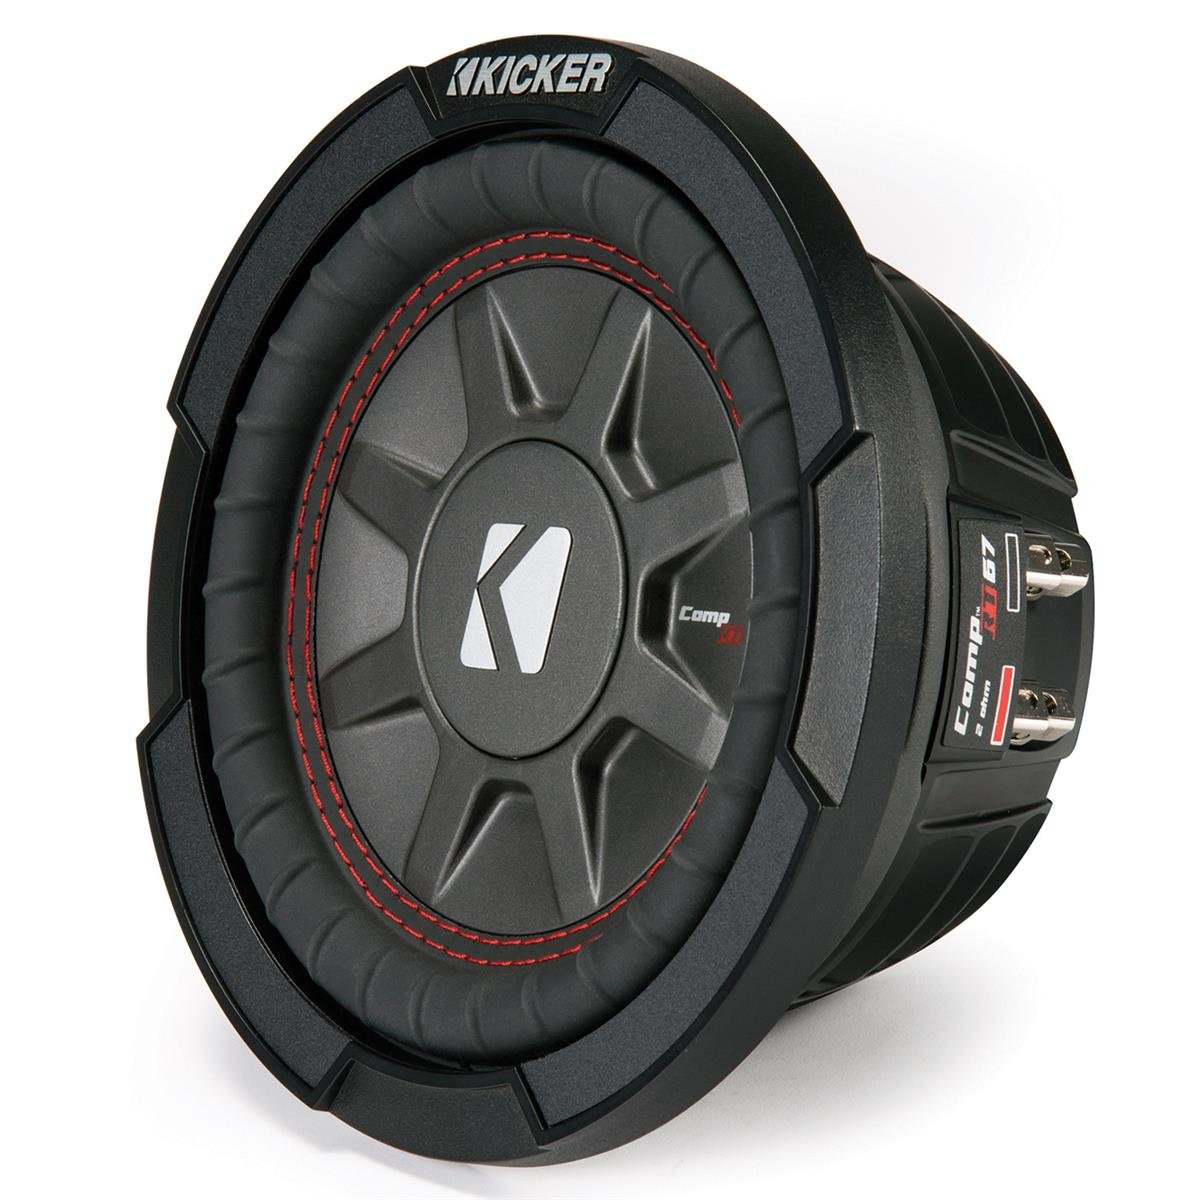 Kicker CompRT 6.75'' 1-Ohm Subwoofer by Kicker (Image #1)